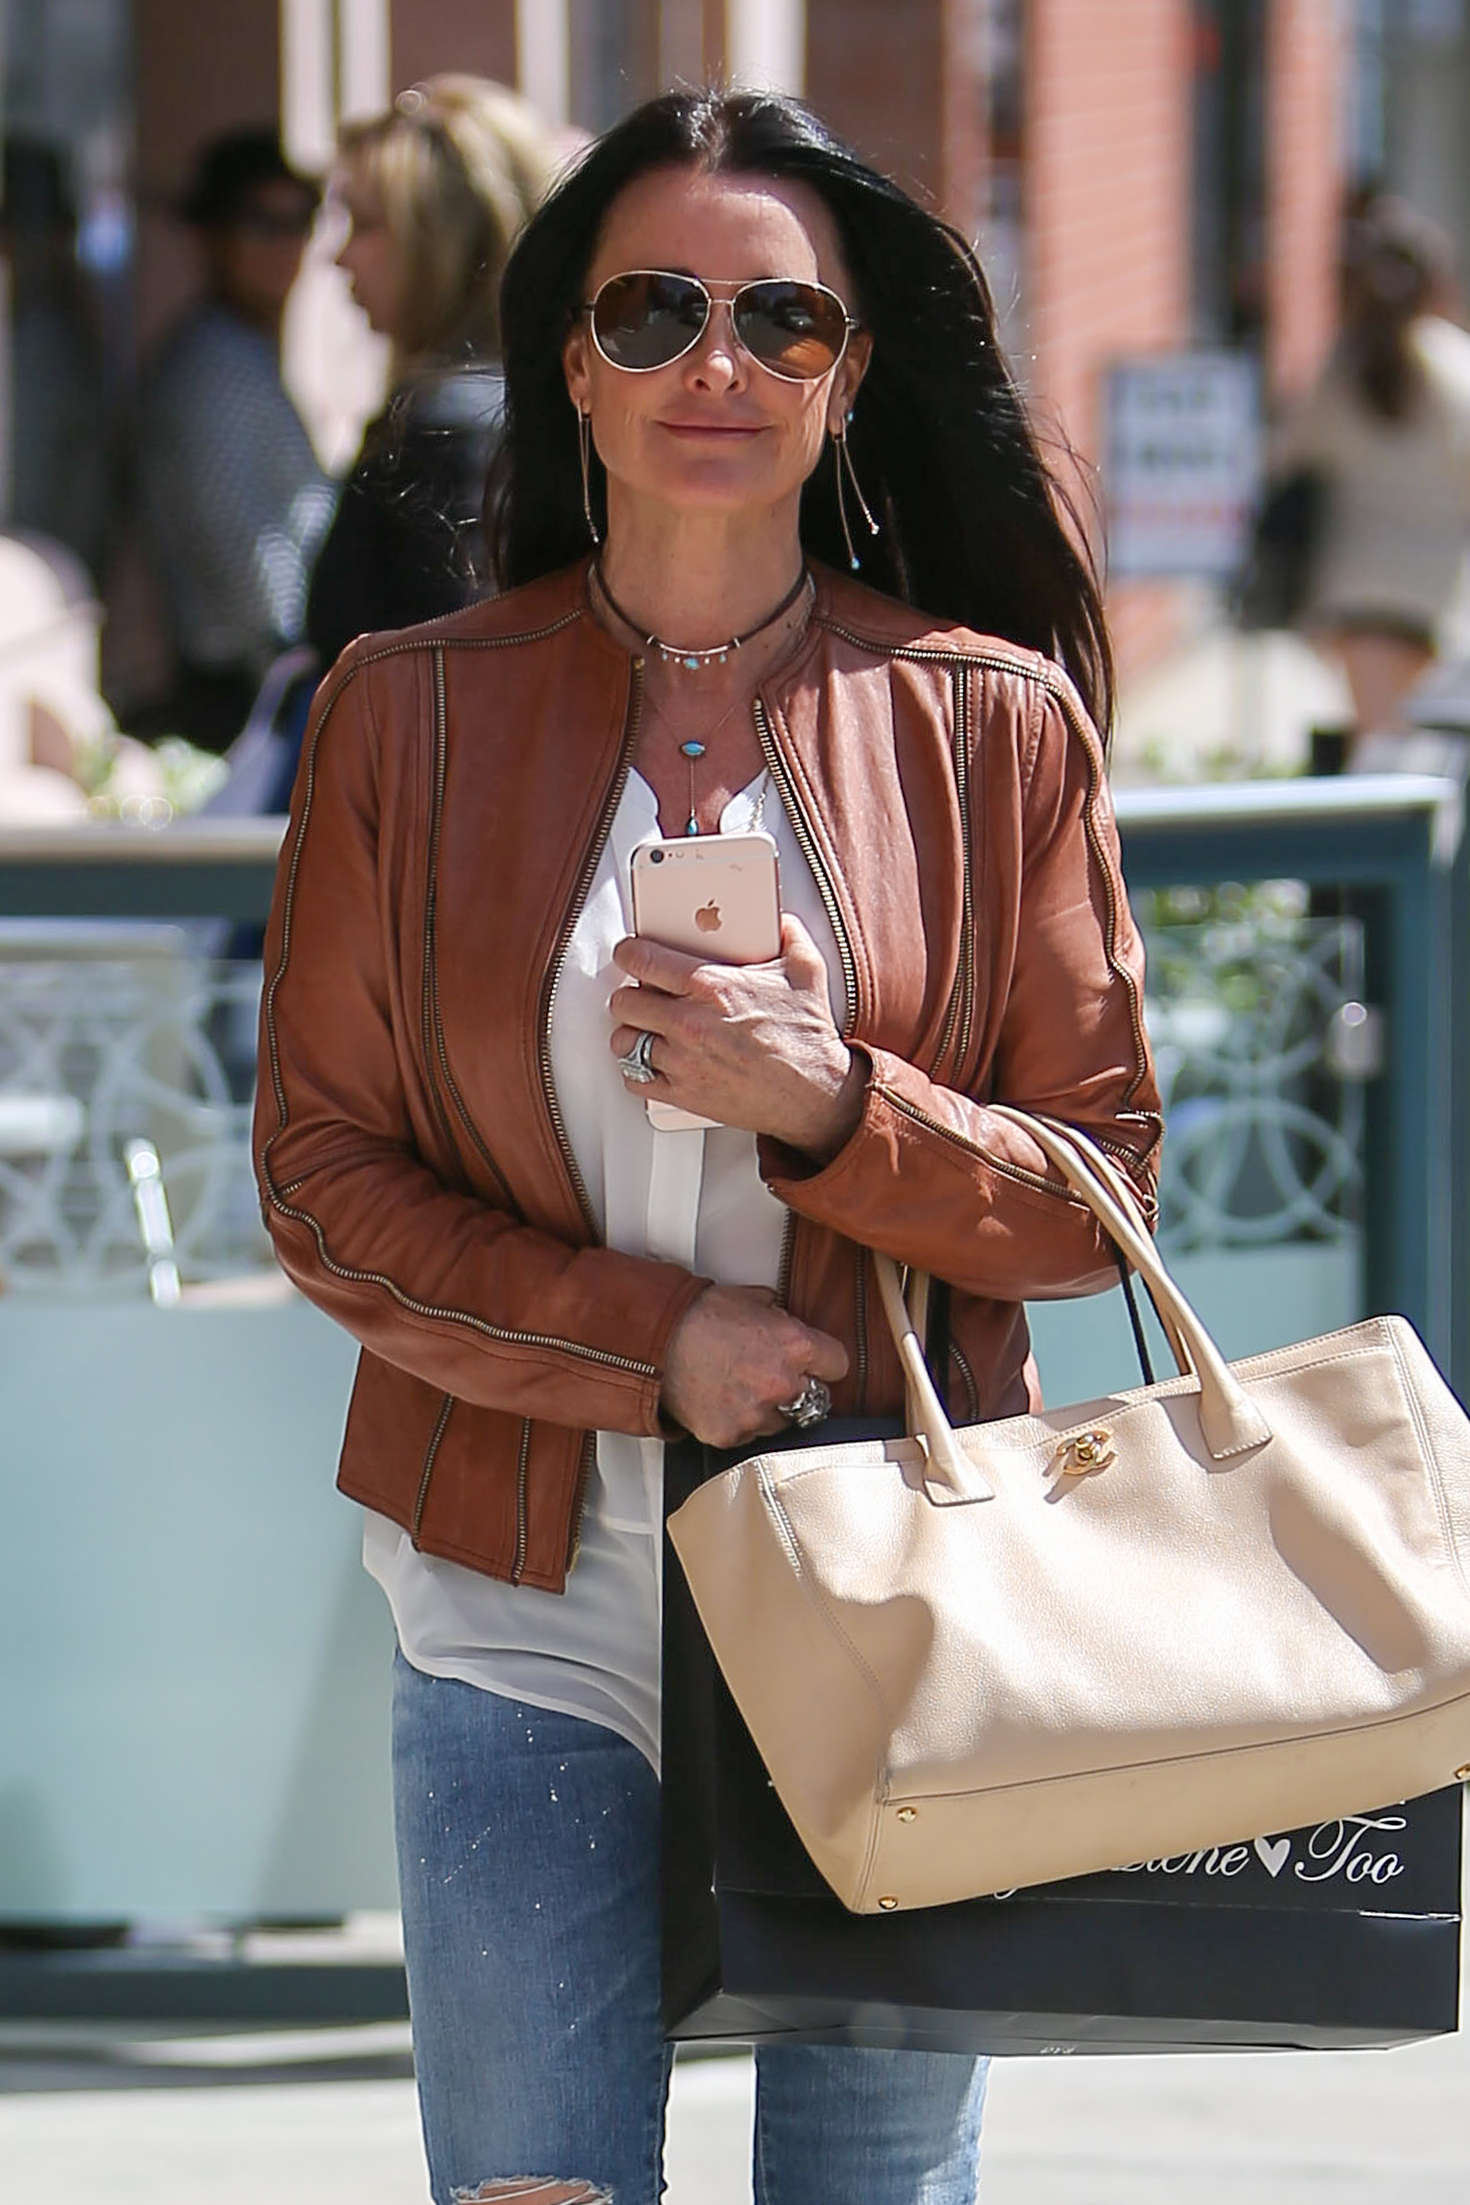 Kyle Richards in a brown leather jacket out in Beverly Hills